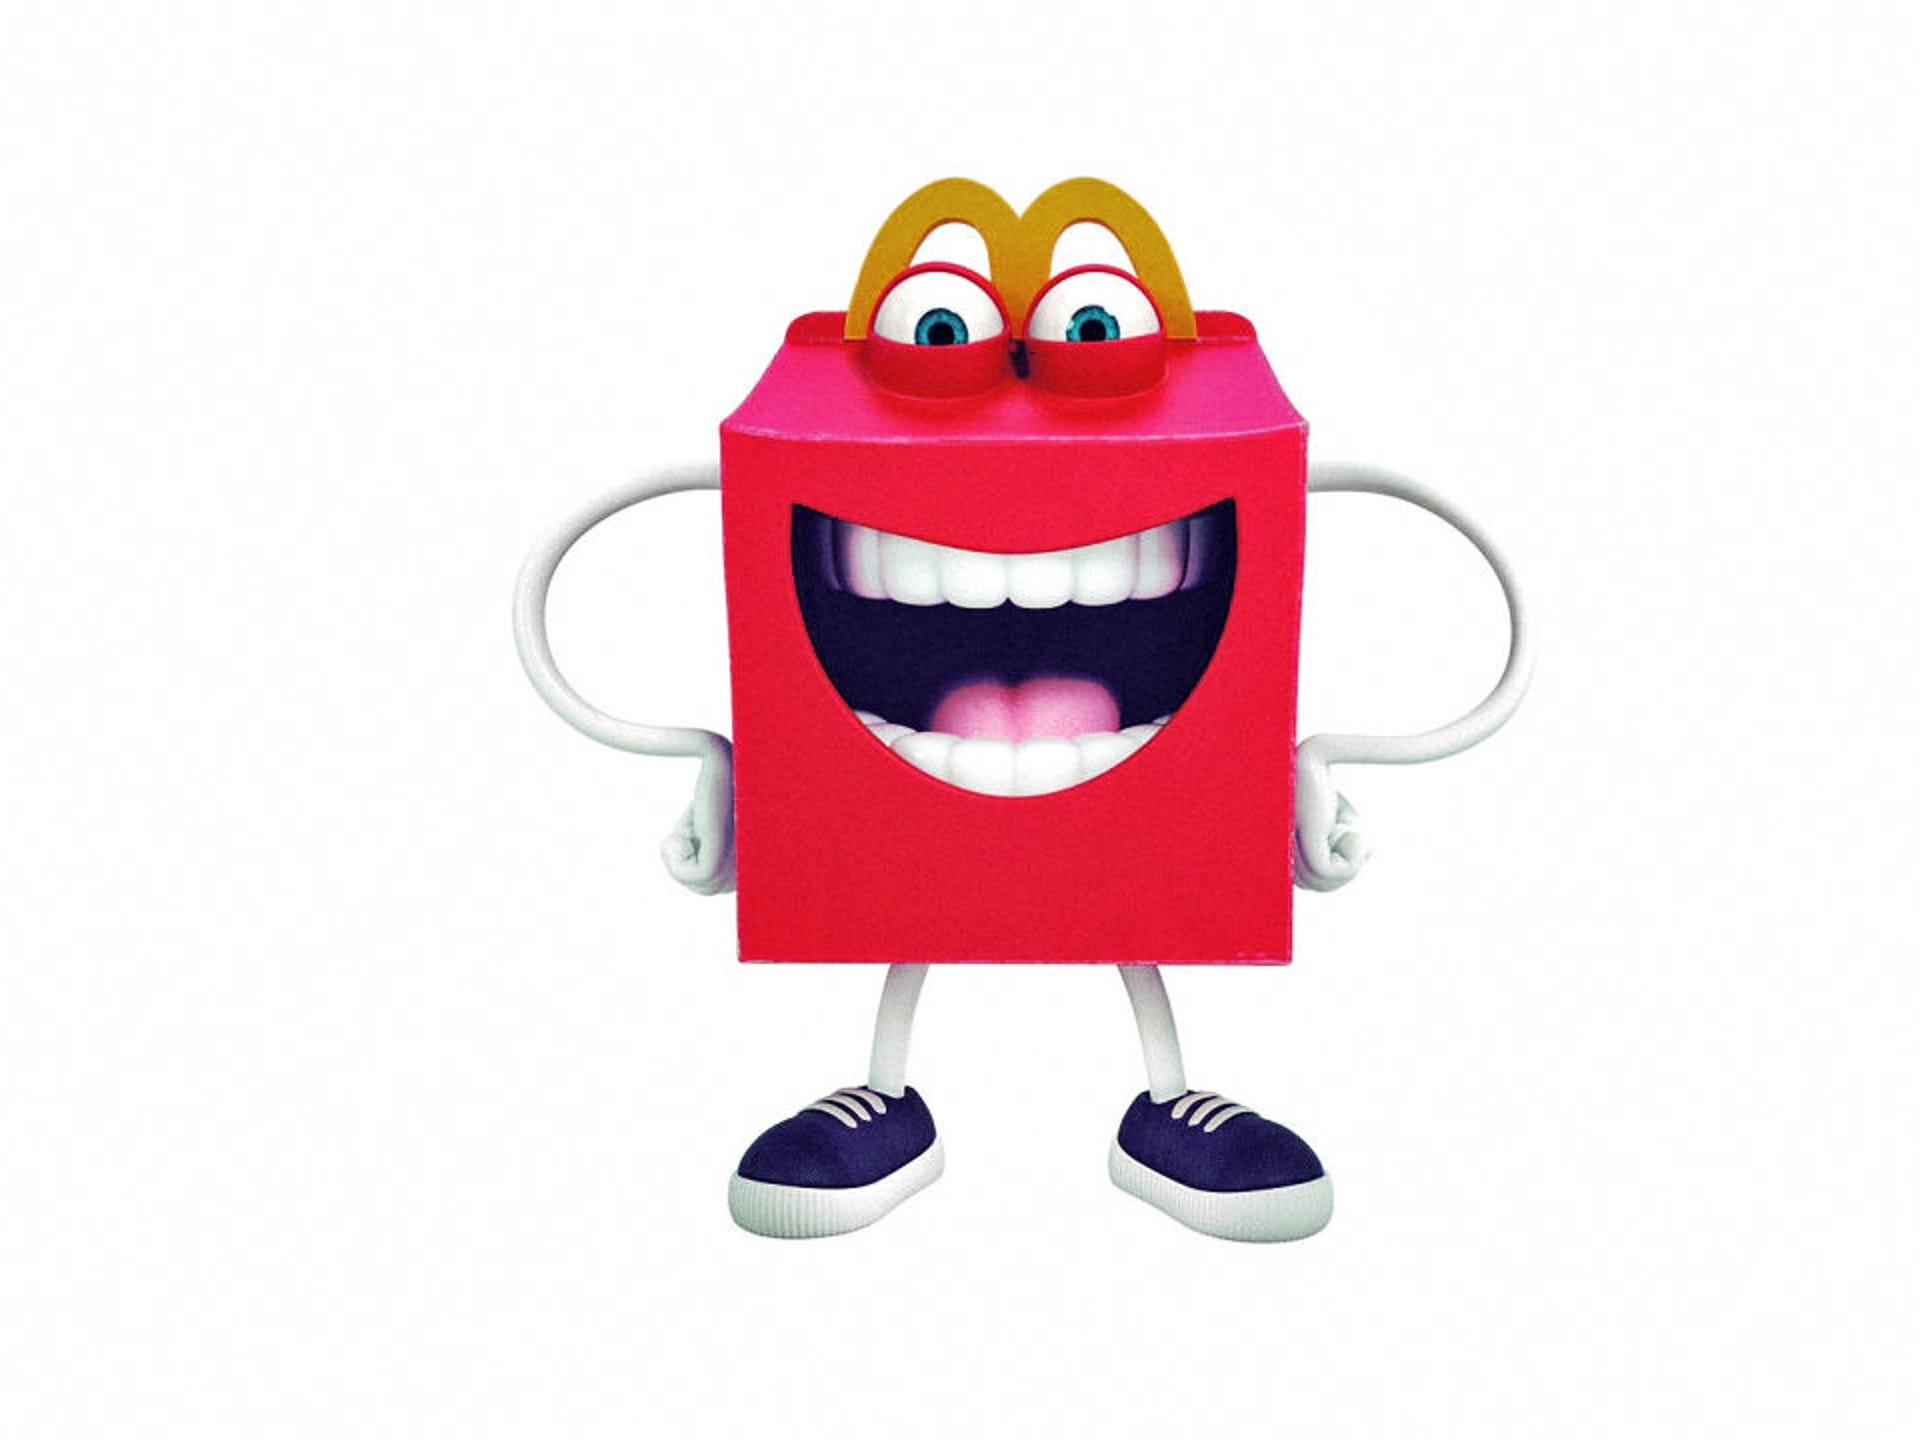 McDonald's new mascot 'Happy' is drawing frowns on social media